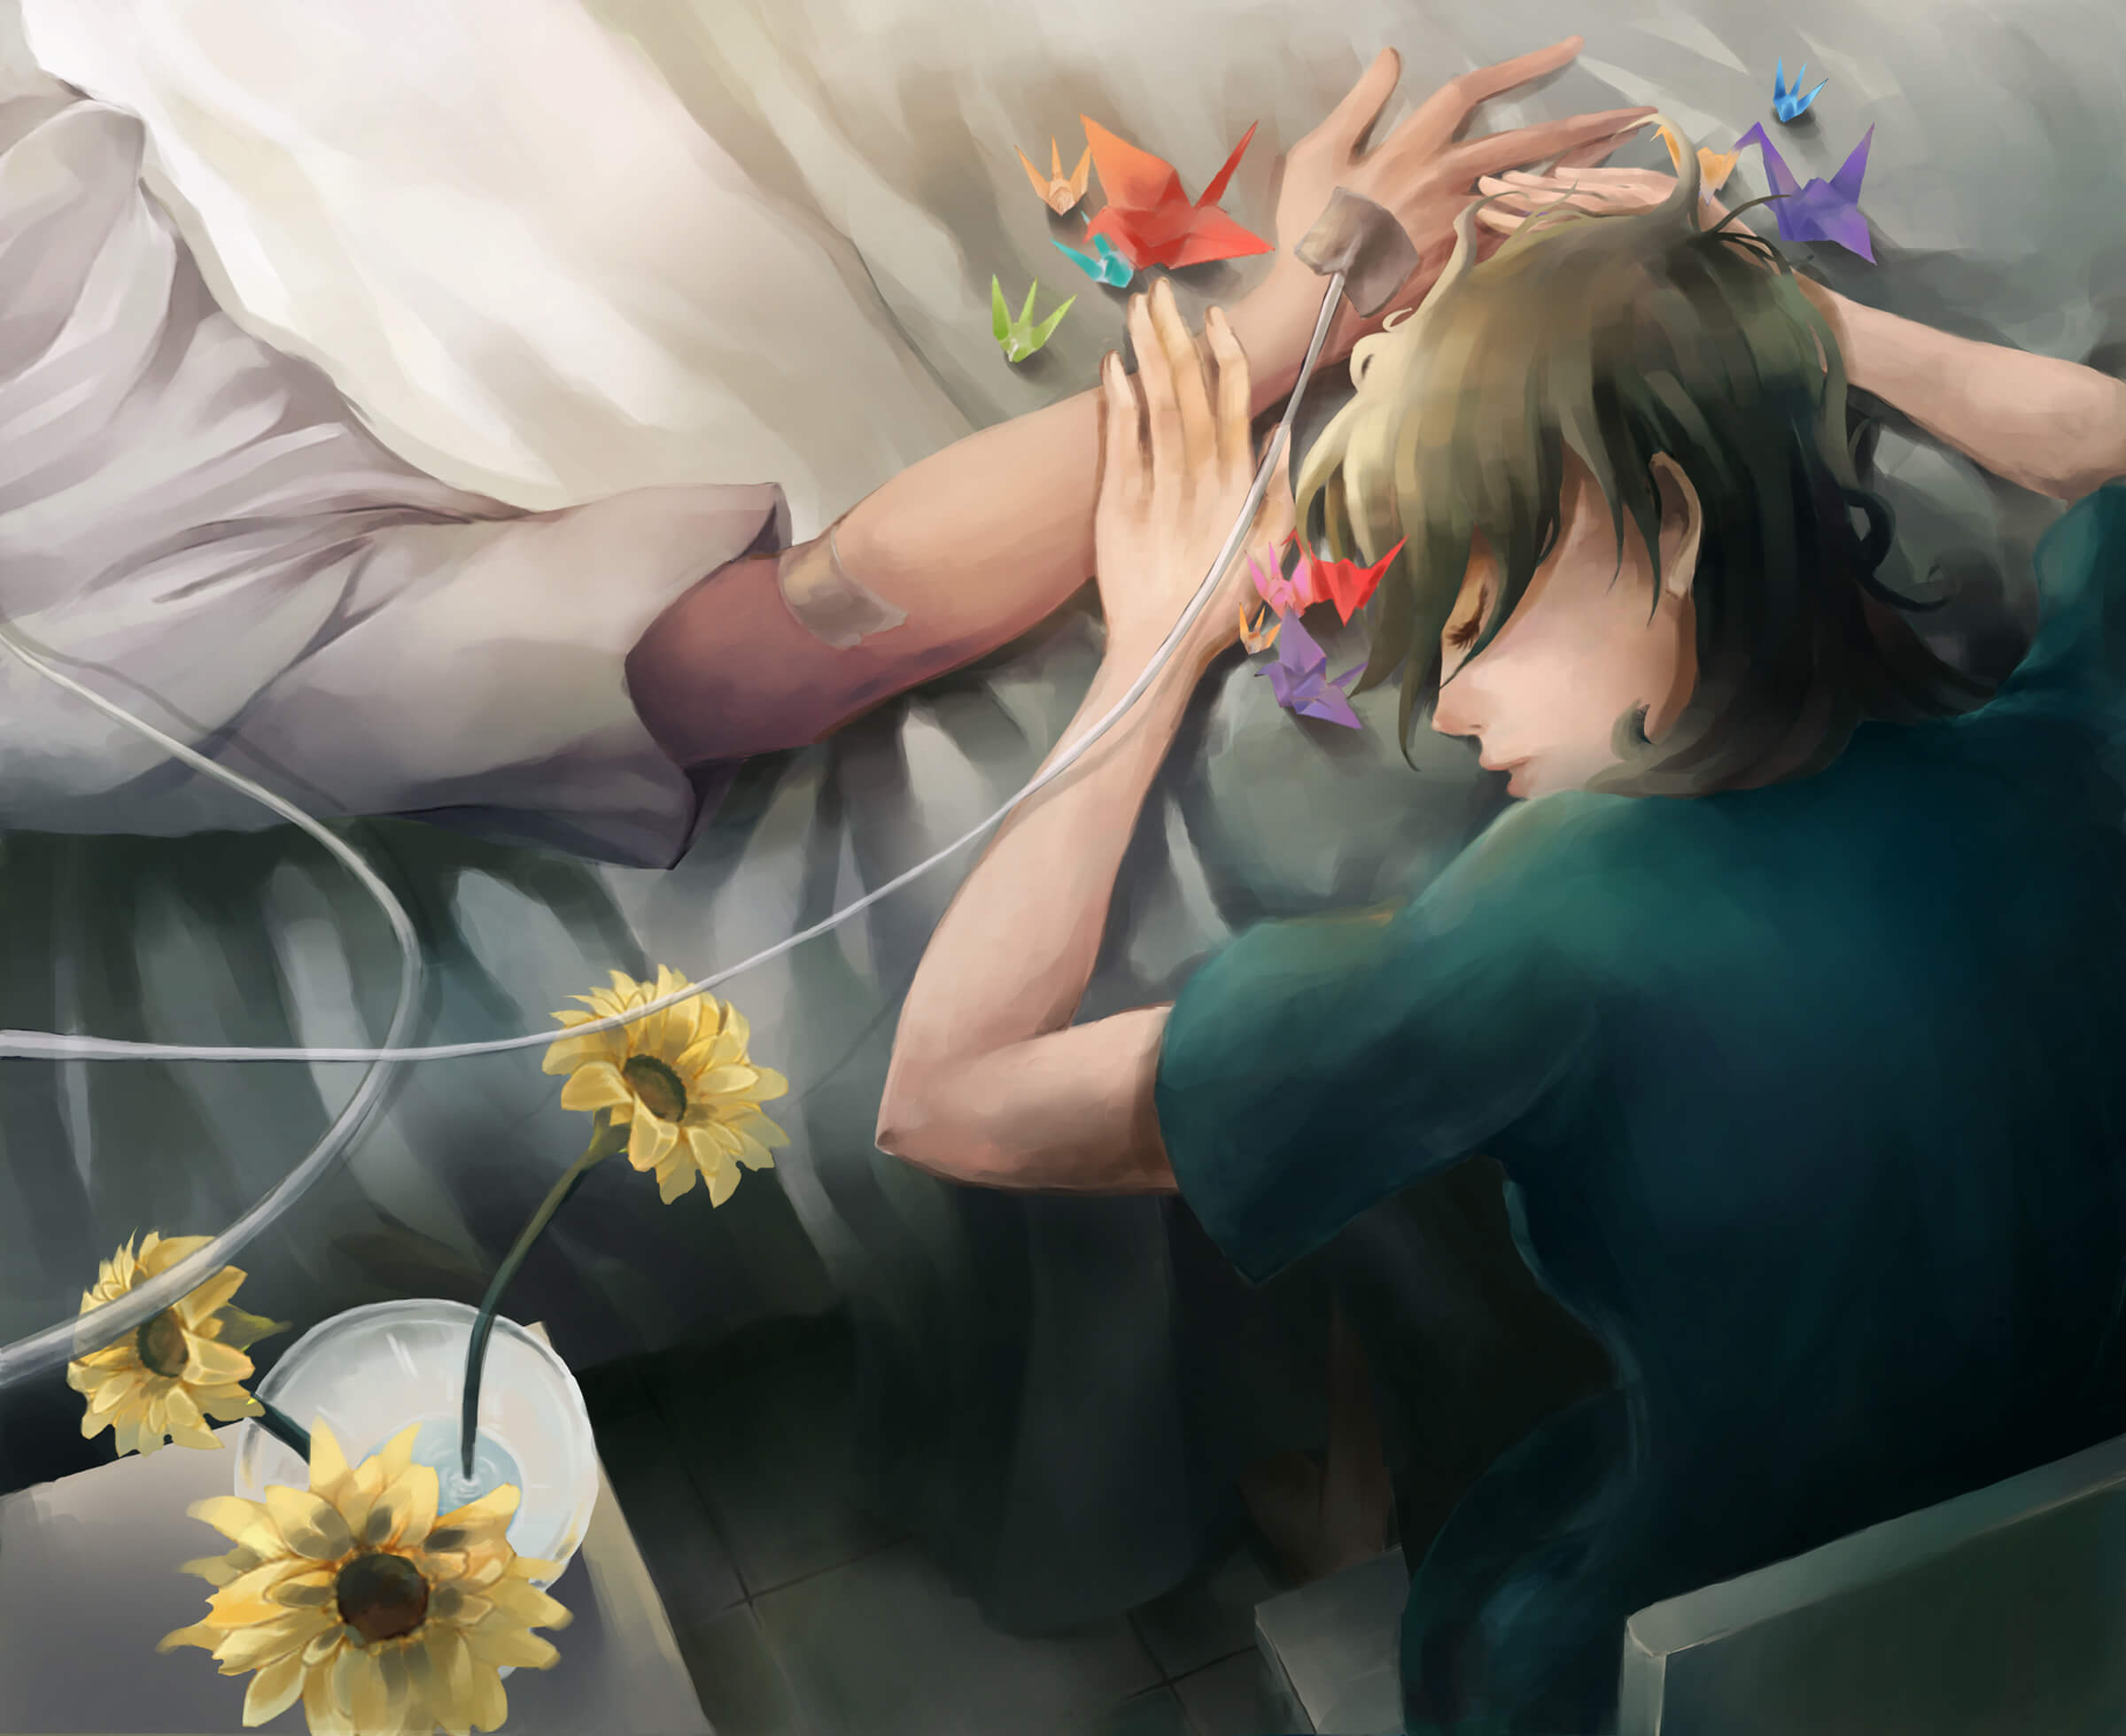 A girl rests her head against an arm of a person in a hospital bed, with several brightly colored paper cranes nearby.